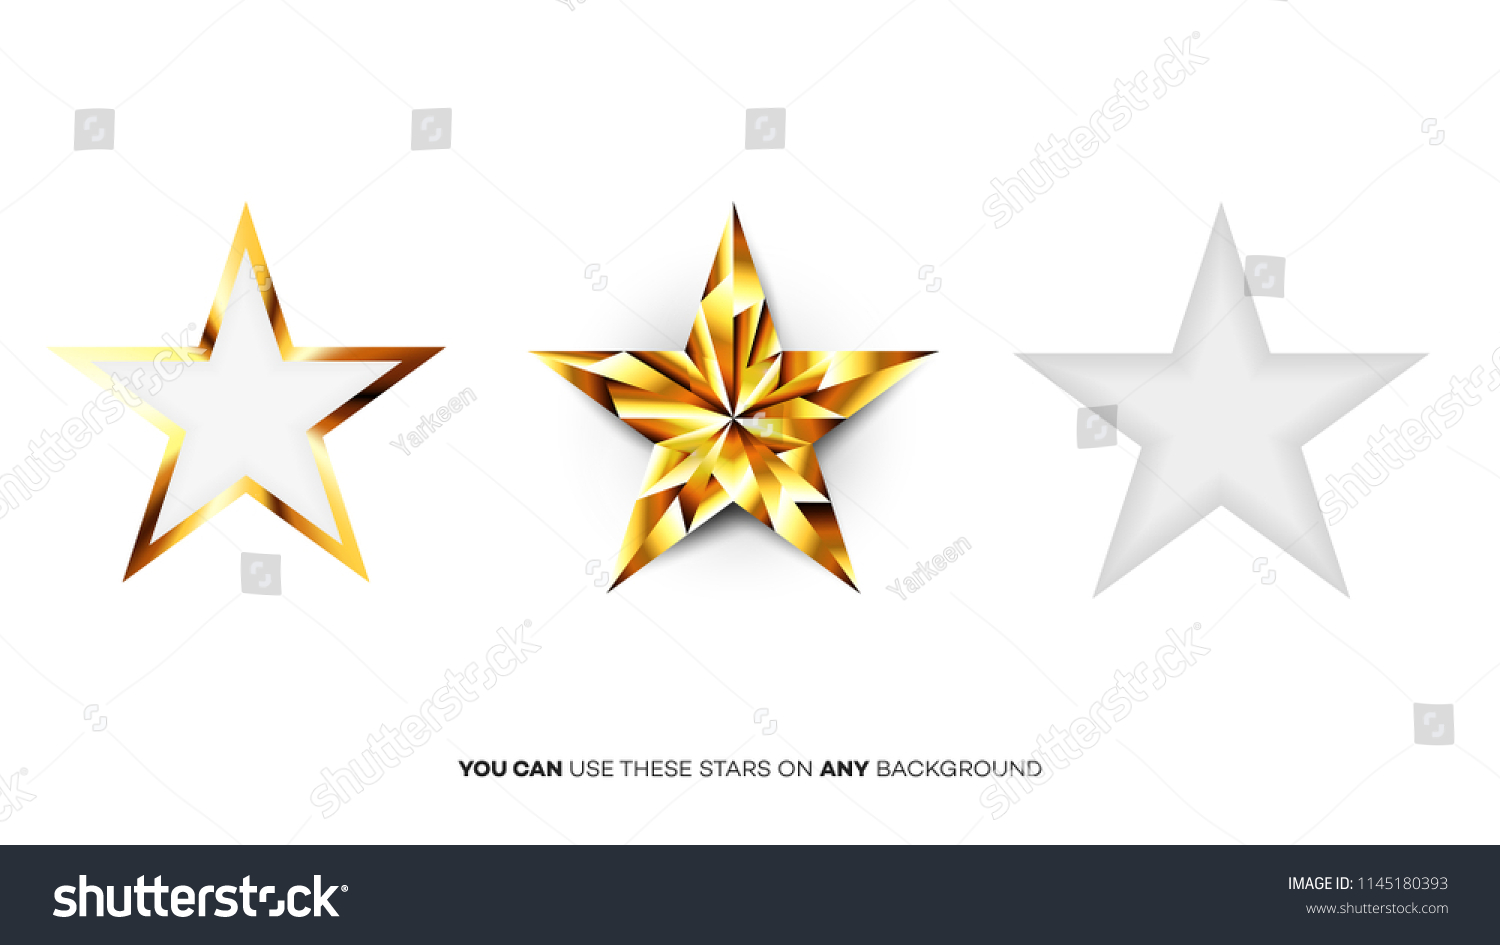 Vector Perfect Glossy Golden Stars Template For Christmas Award Or Five Rating Design